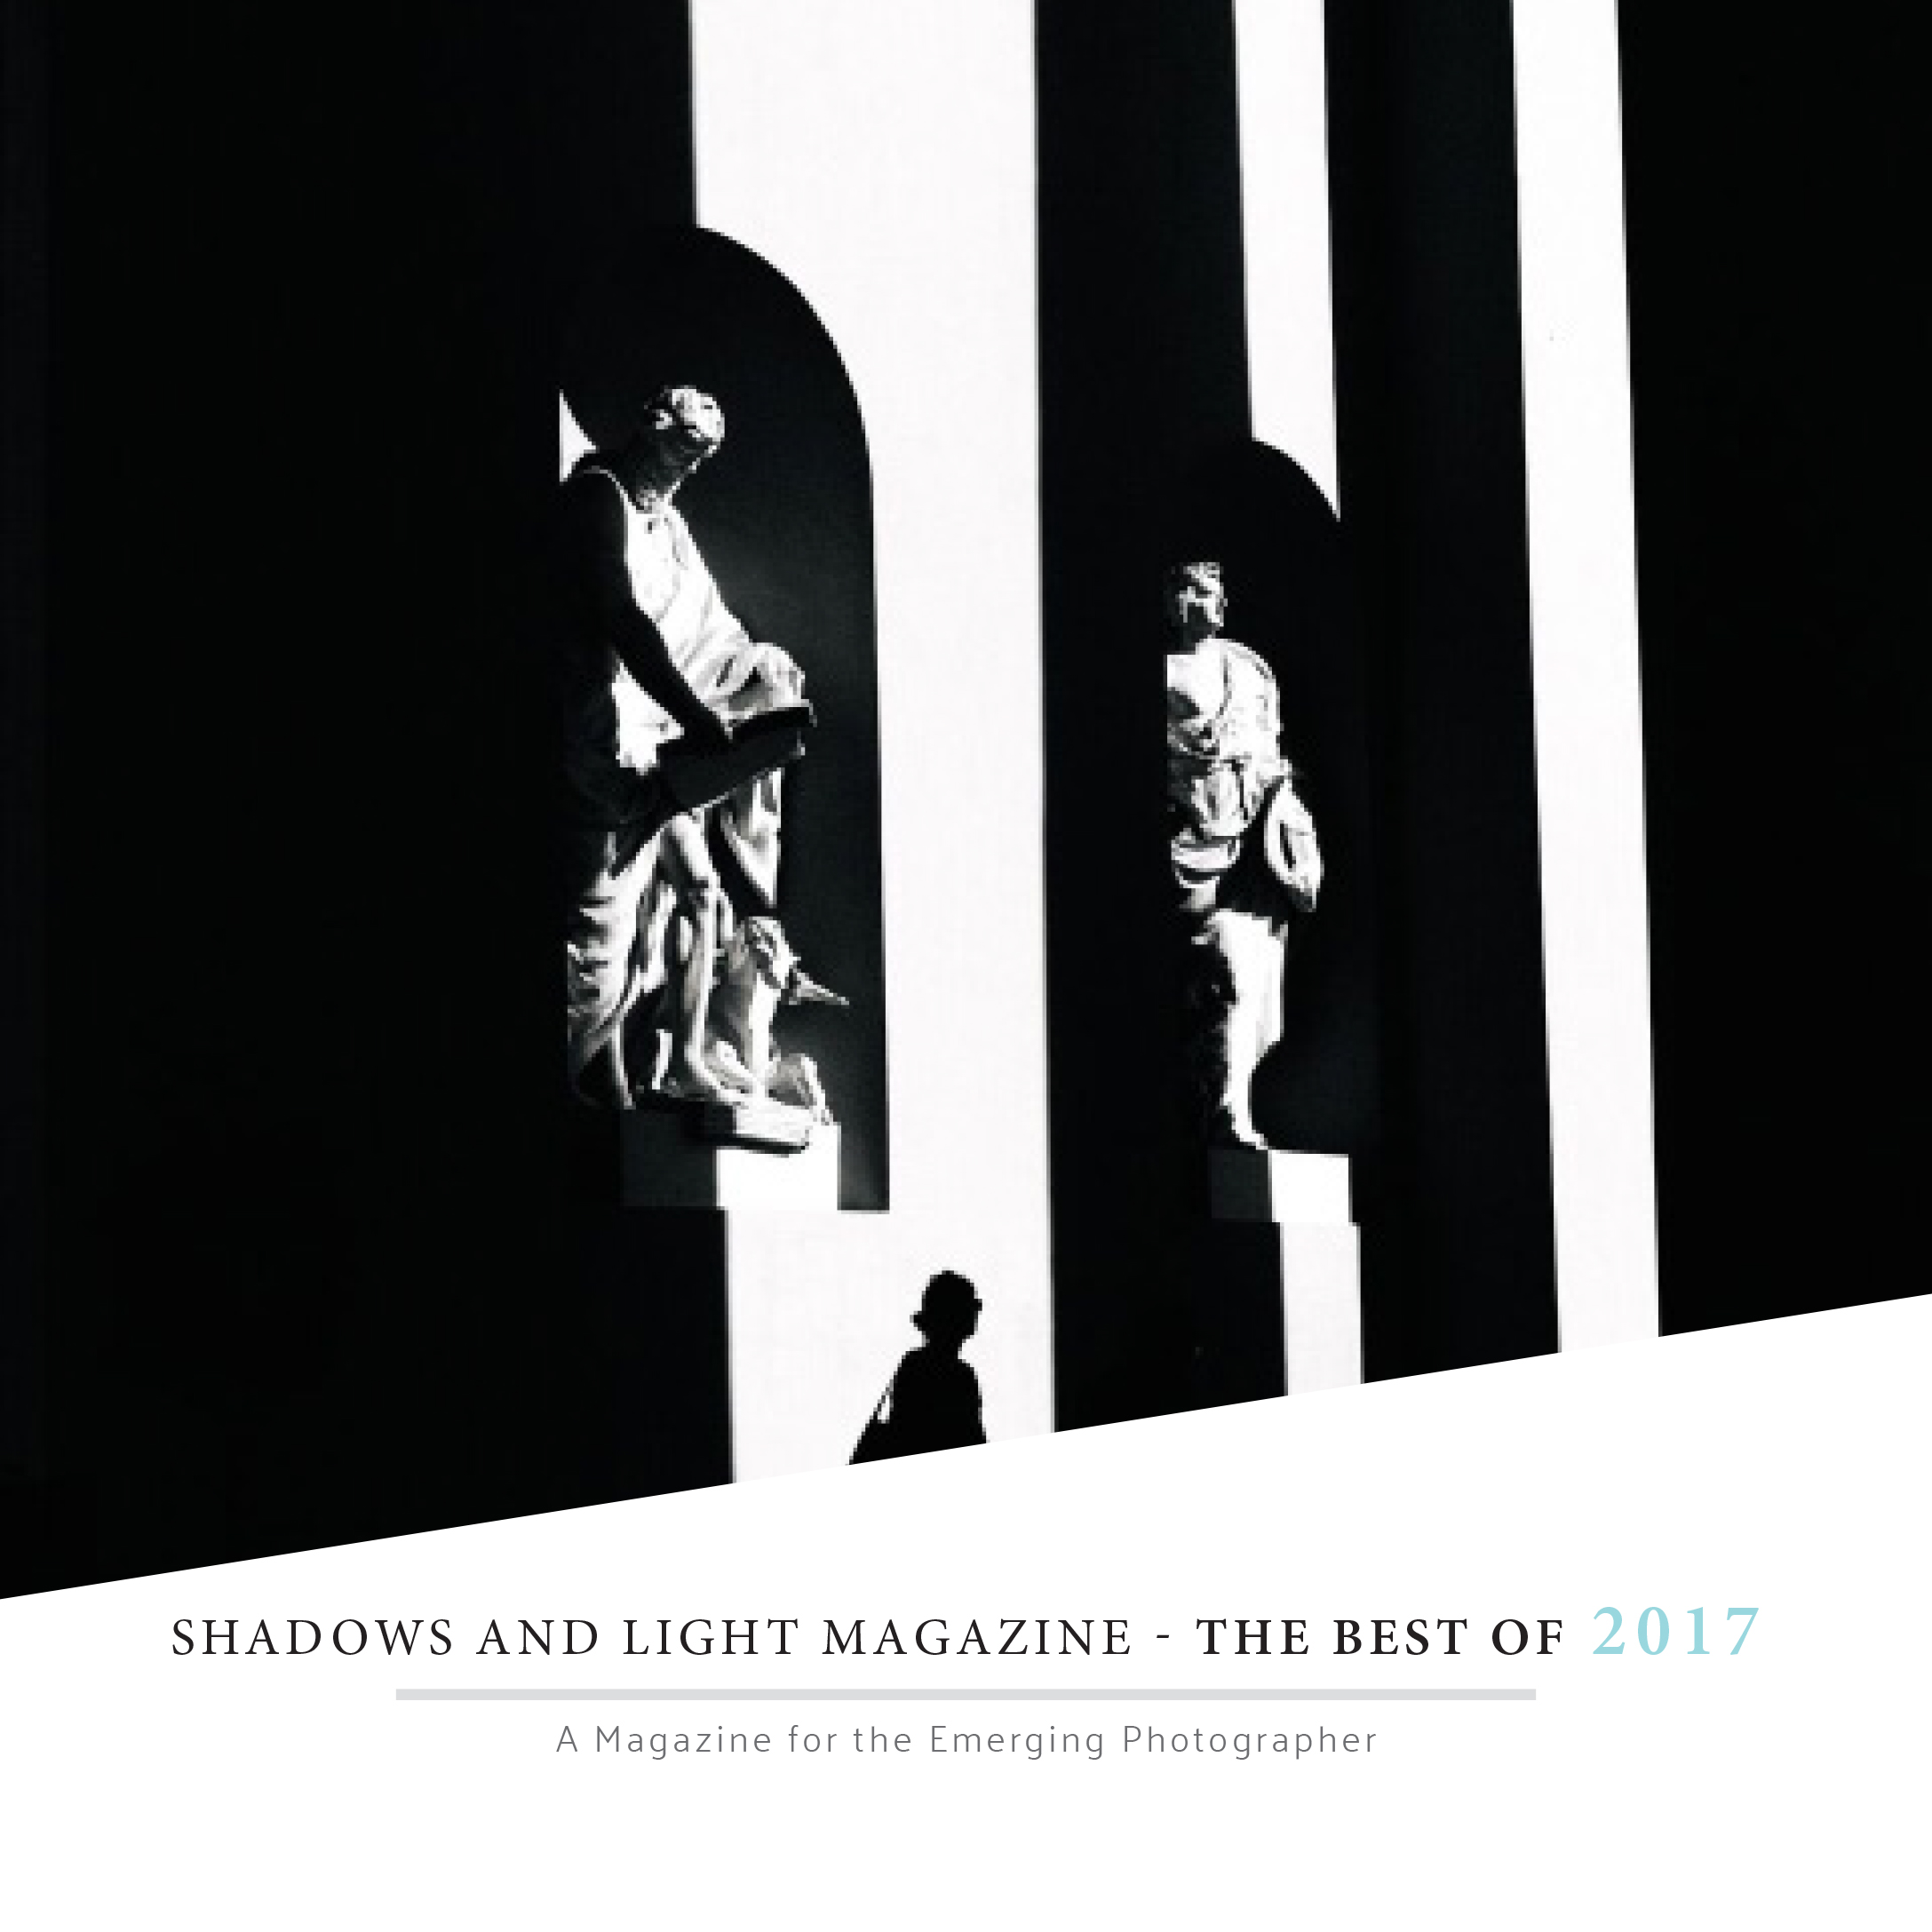 Best of Shadows and Light Magazine 2017